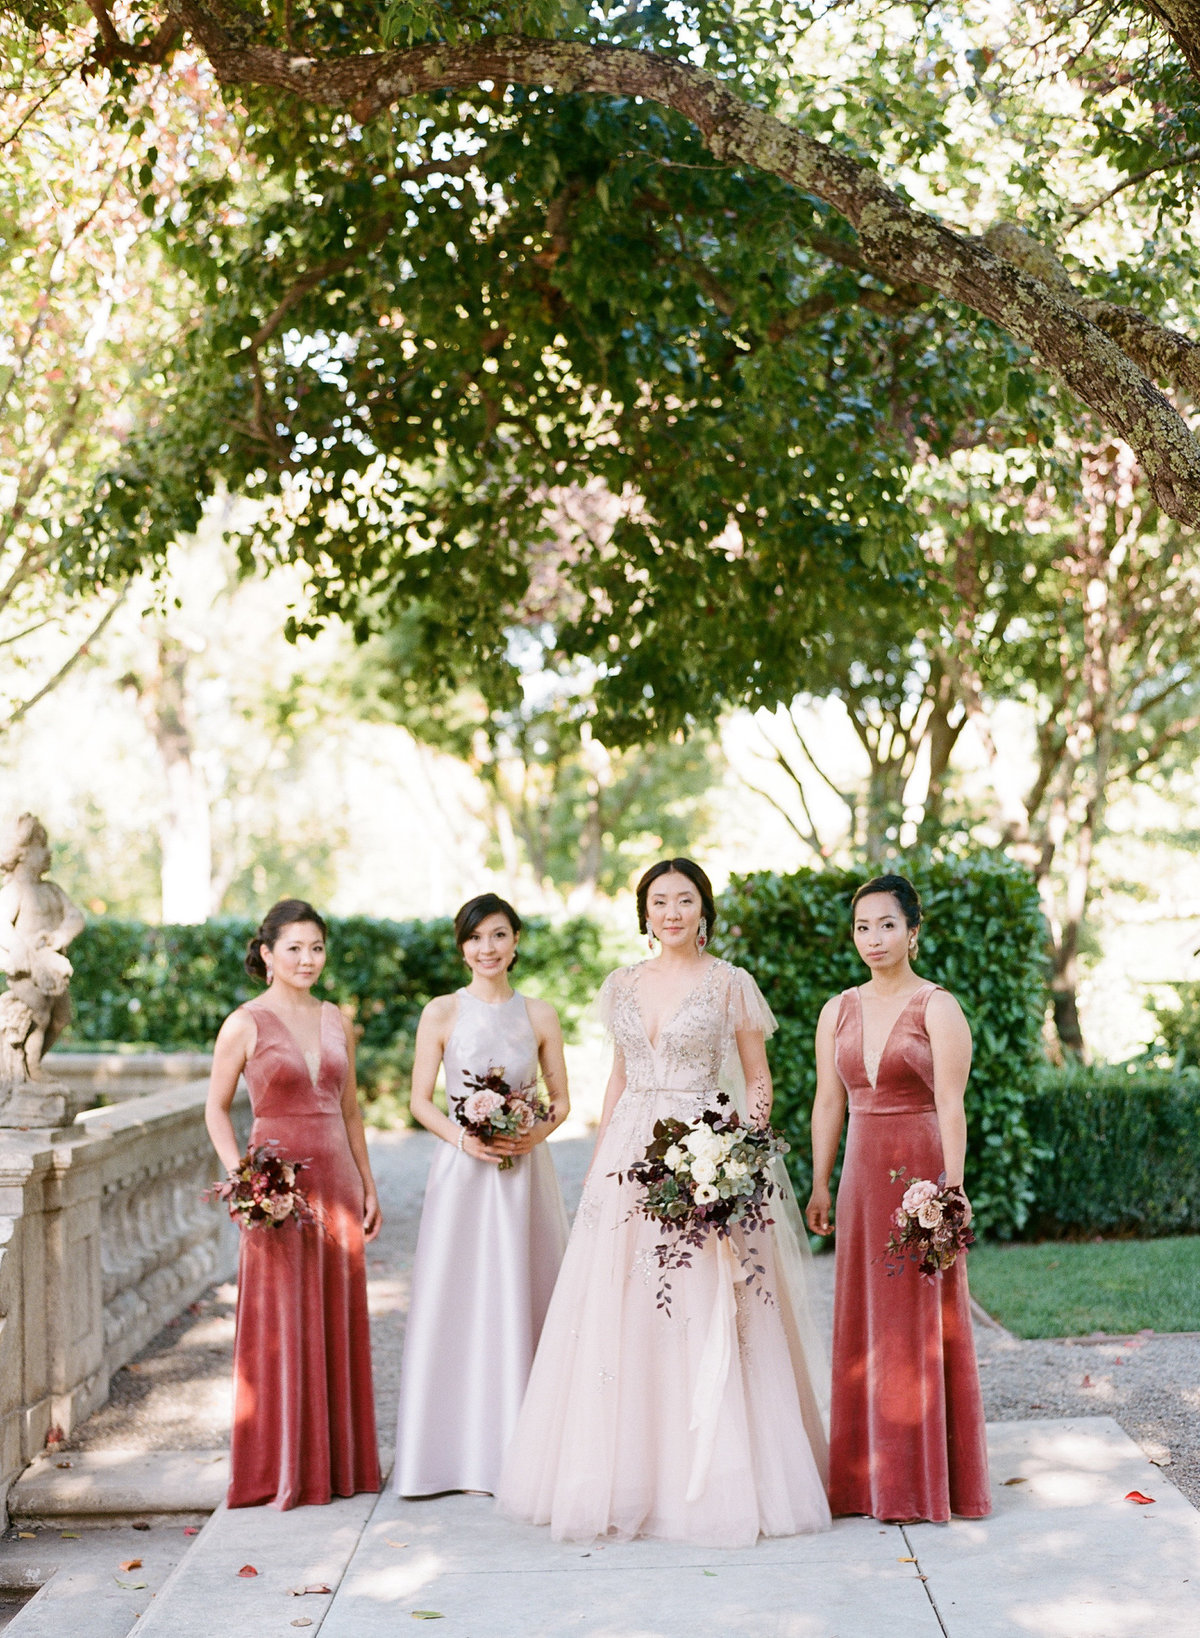 Bridesmaids for wedding by Jenny Schneider Events at the Beaulieu Garden in Napa Valley, California. Photo by Lori Paladino Photography.